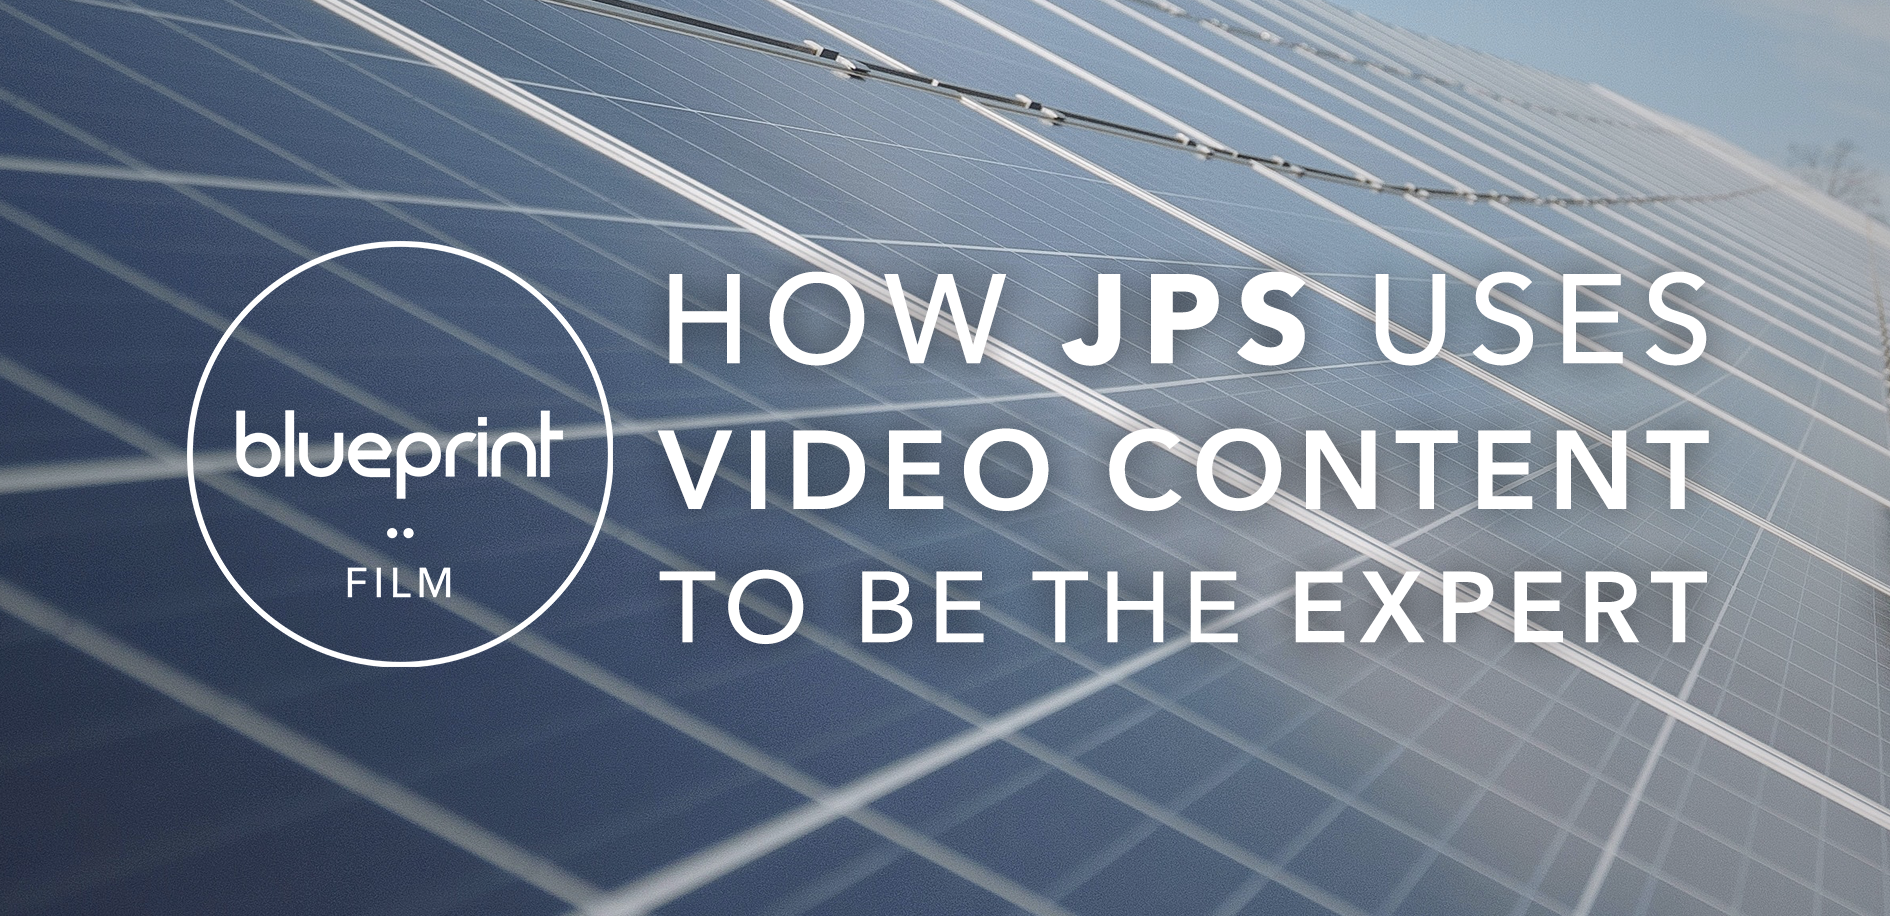 how jps uses video content to be the expert